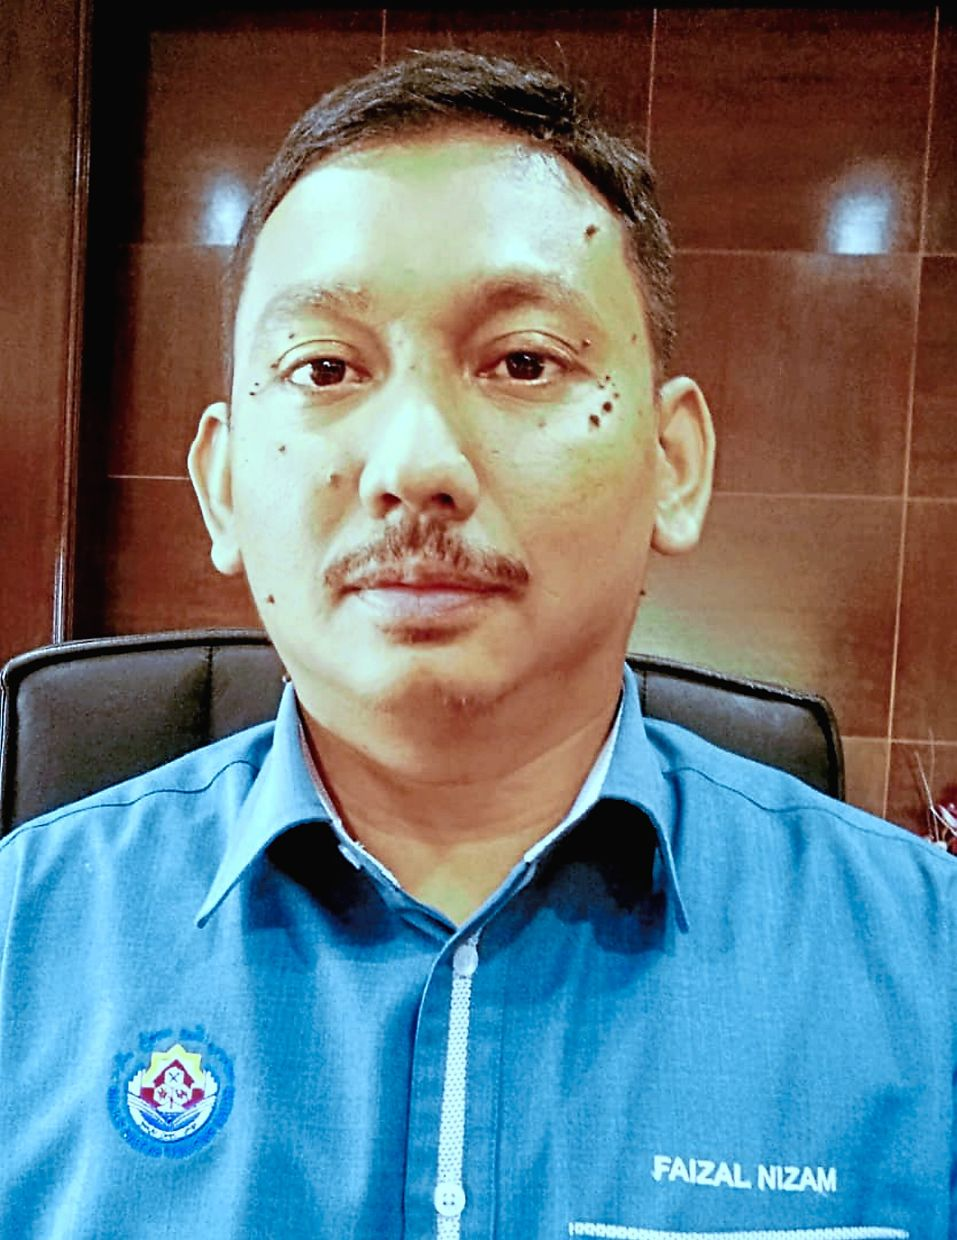 Faizal Nizam wants cooperation from ratepayers to stop open burning and illegal dumping.